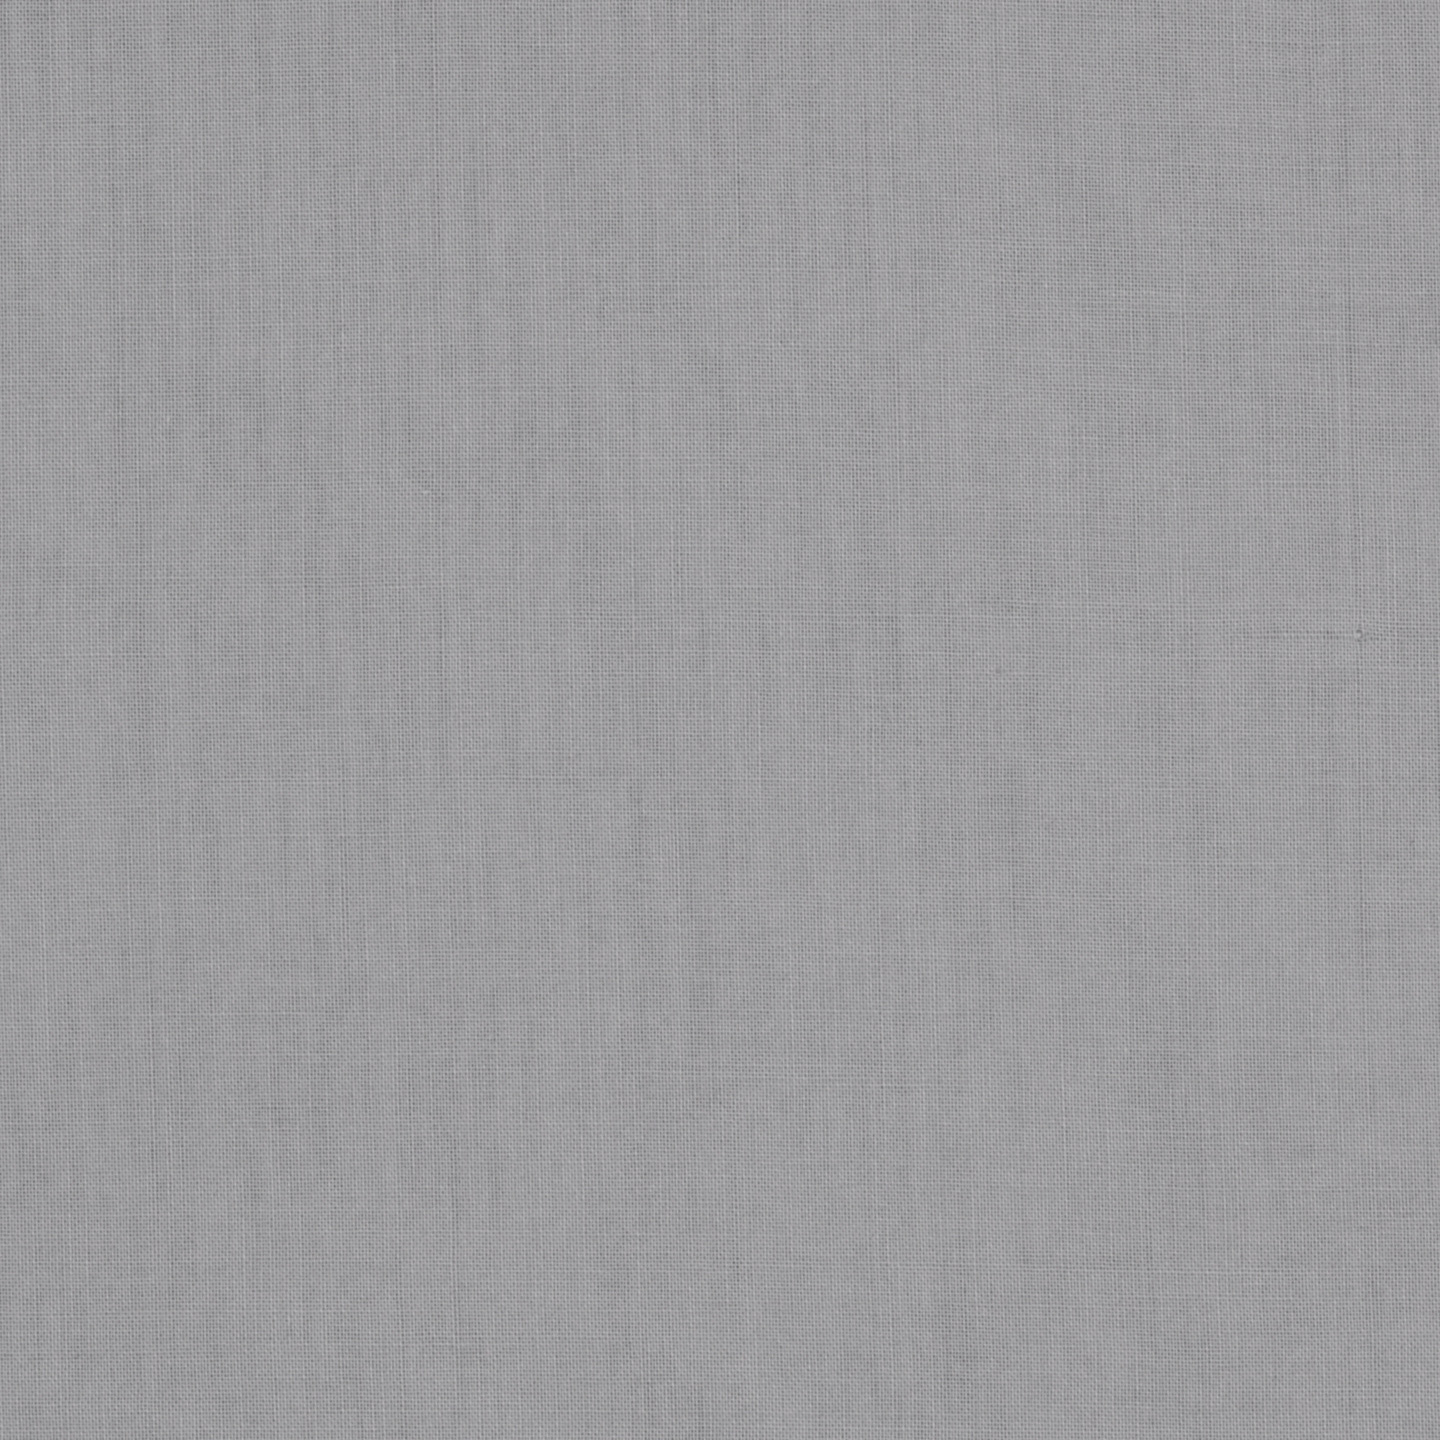 Cotton Voile Solid Light Grey Fabric